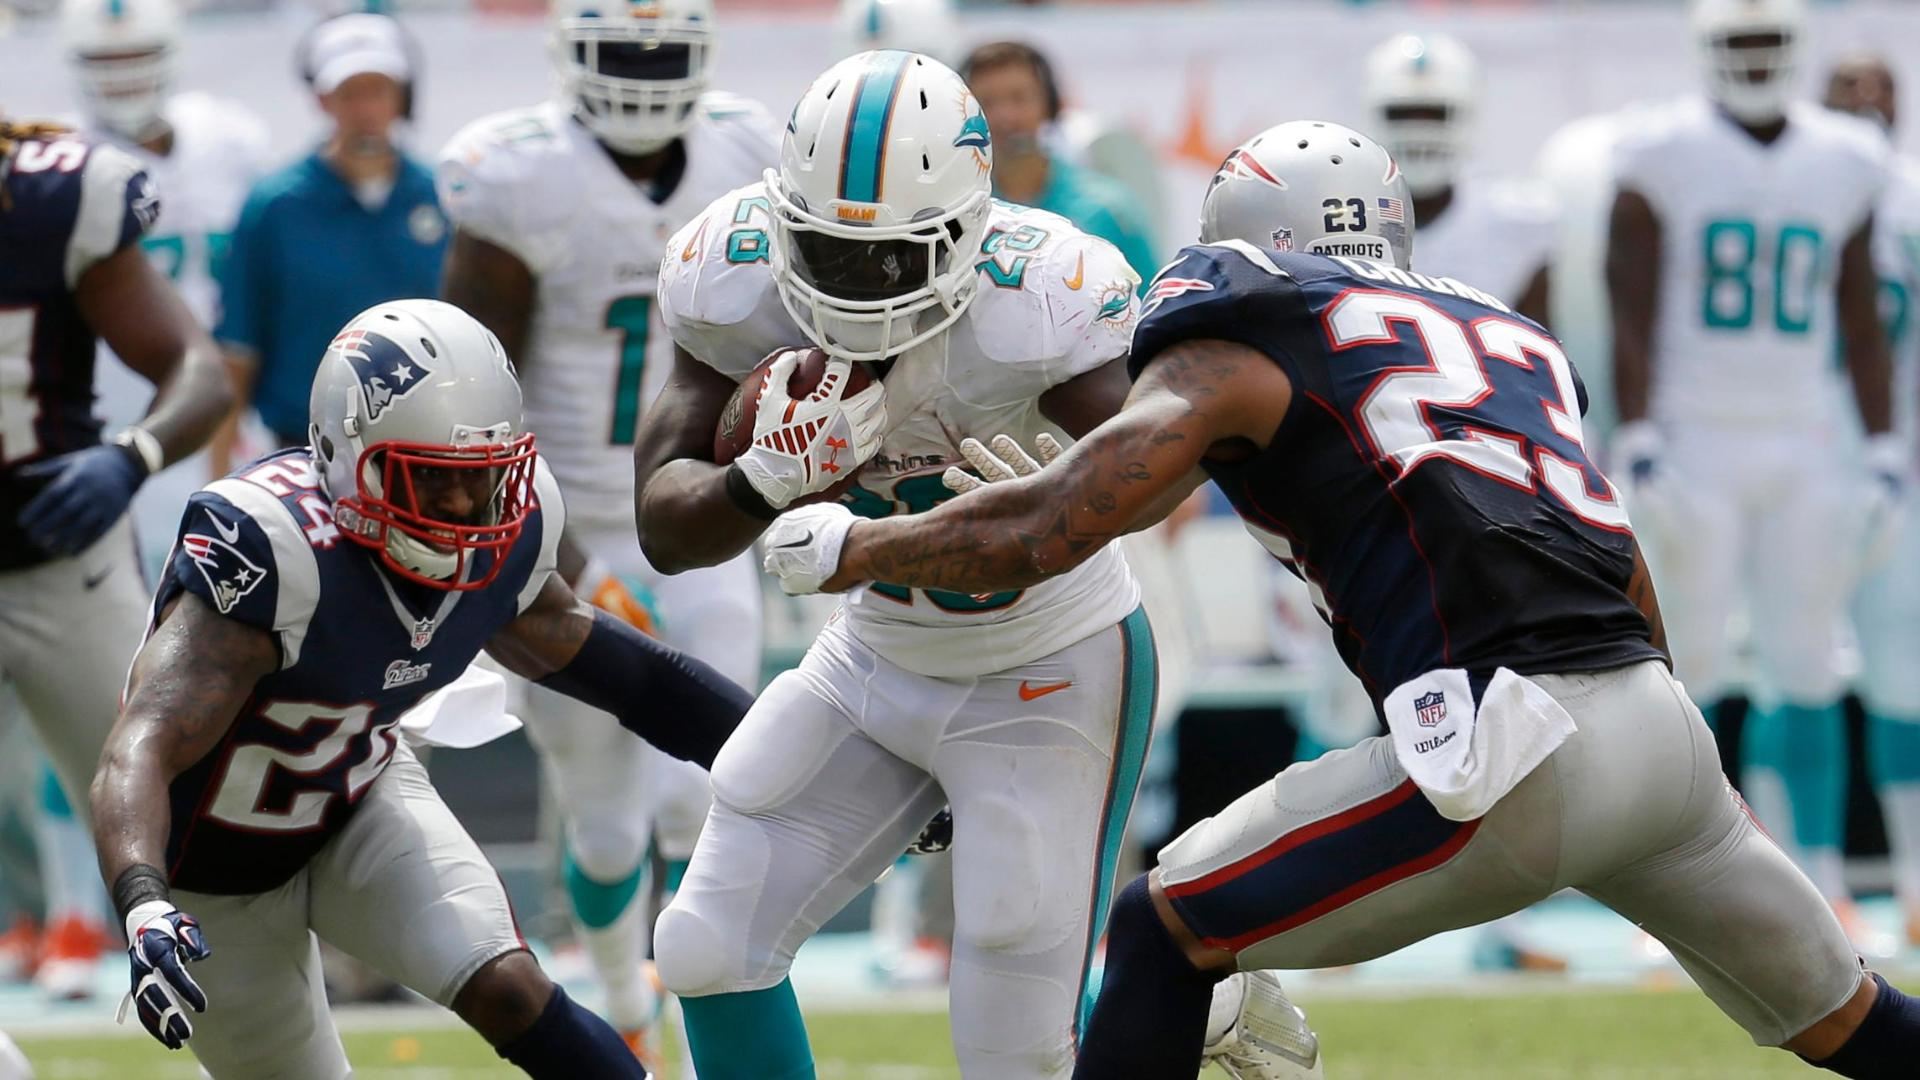 Knowshon Moreno Dolphins Dolphins rally p...